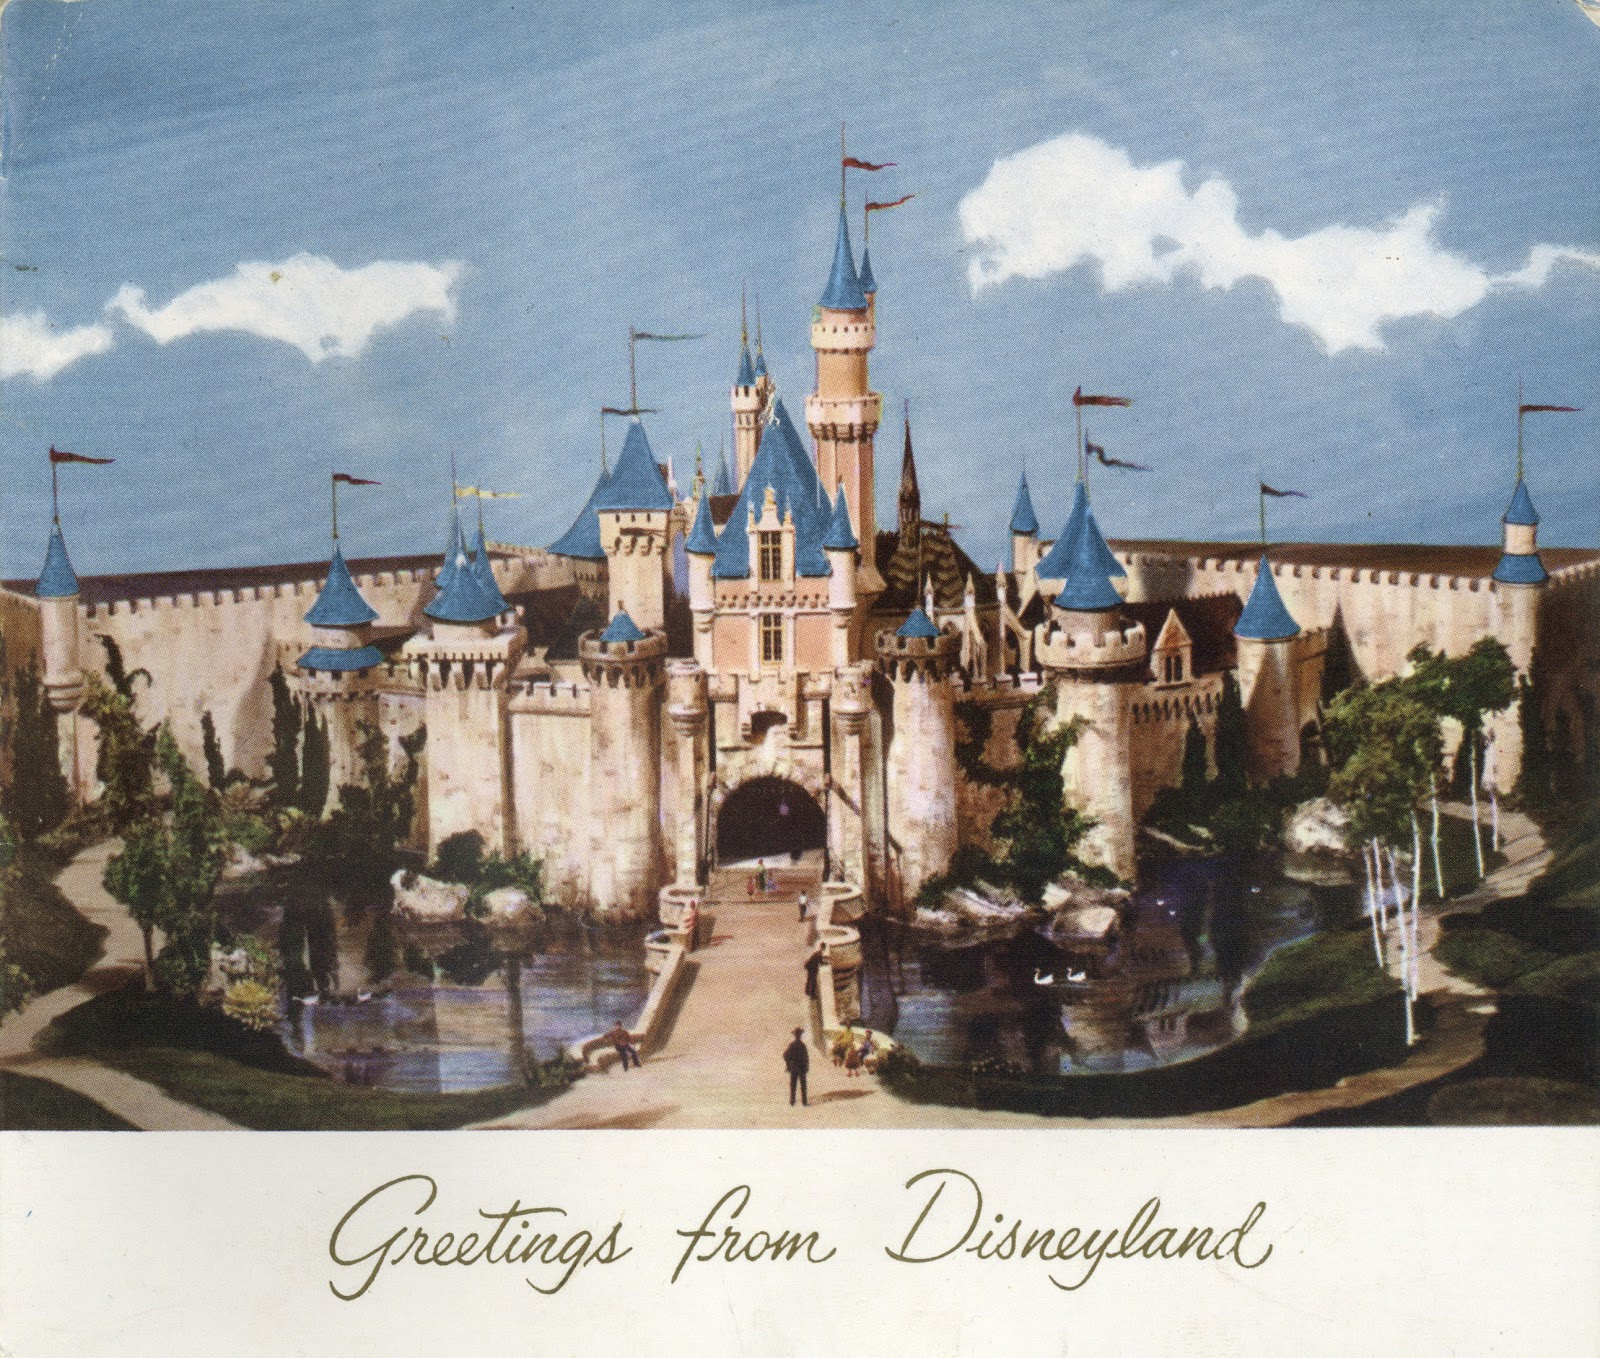 Vintage disneyland tickets greetings from disneyland gibson card greetings from disneyland gibson card september 1955 m4hsunfo Choice Image